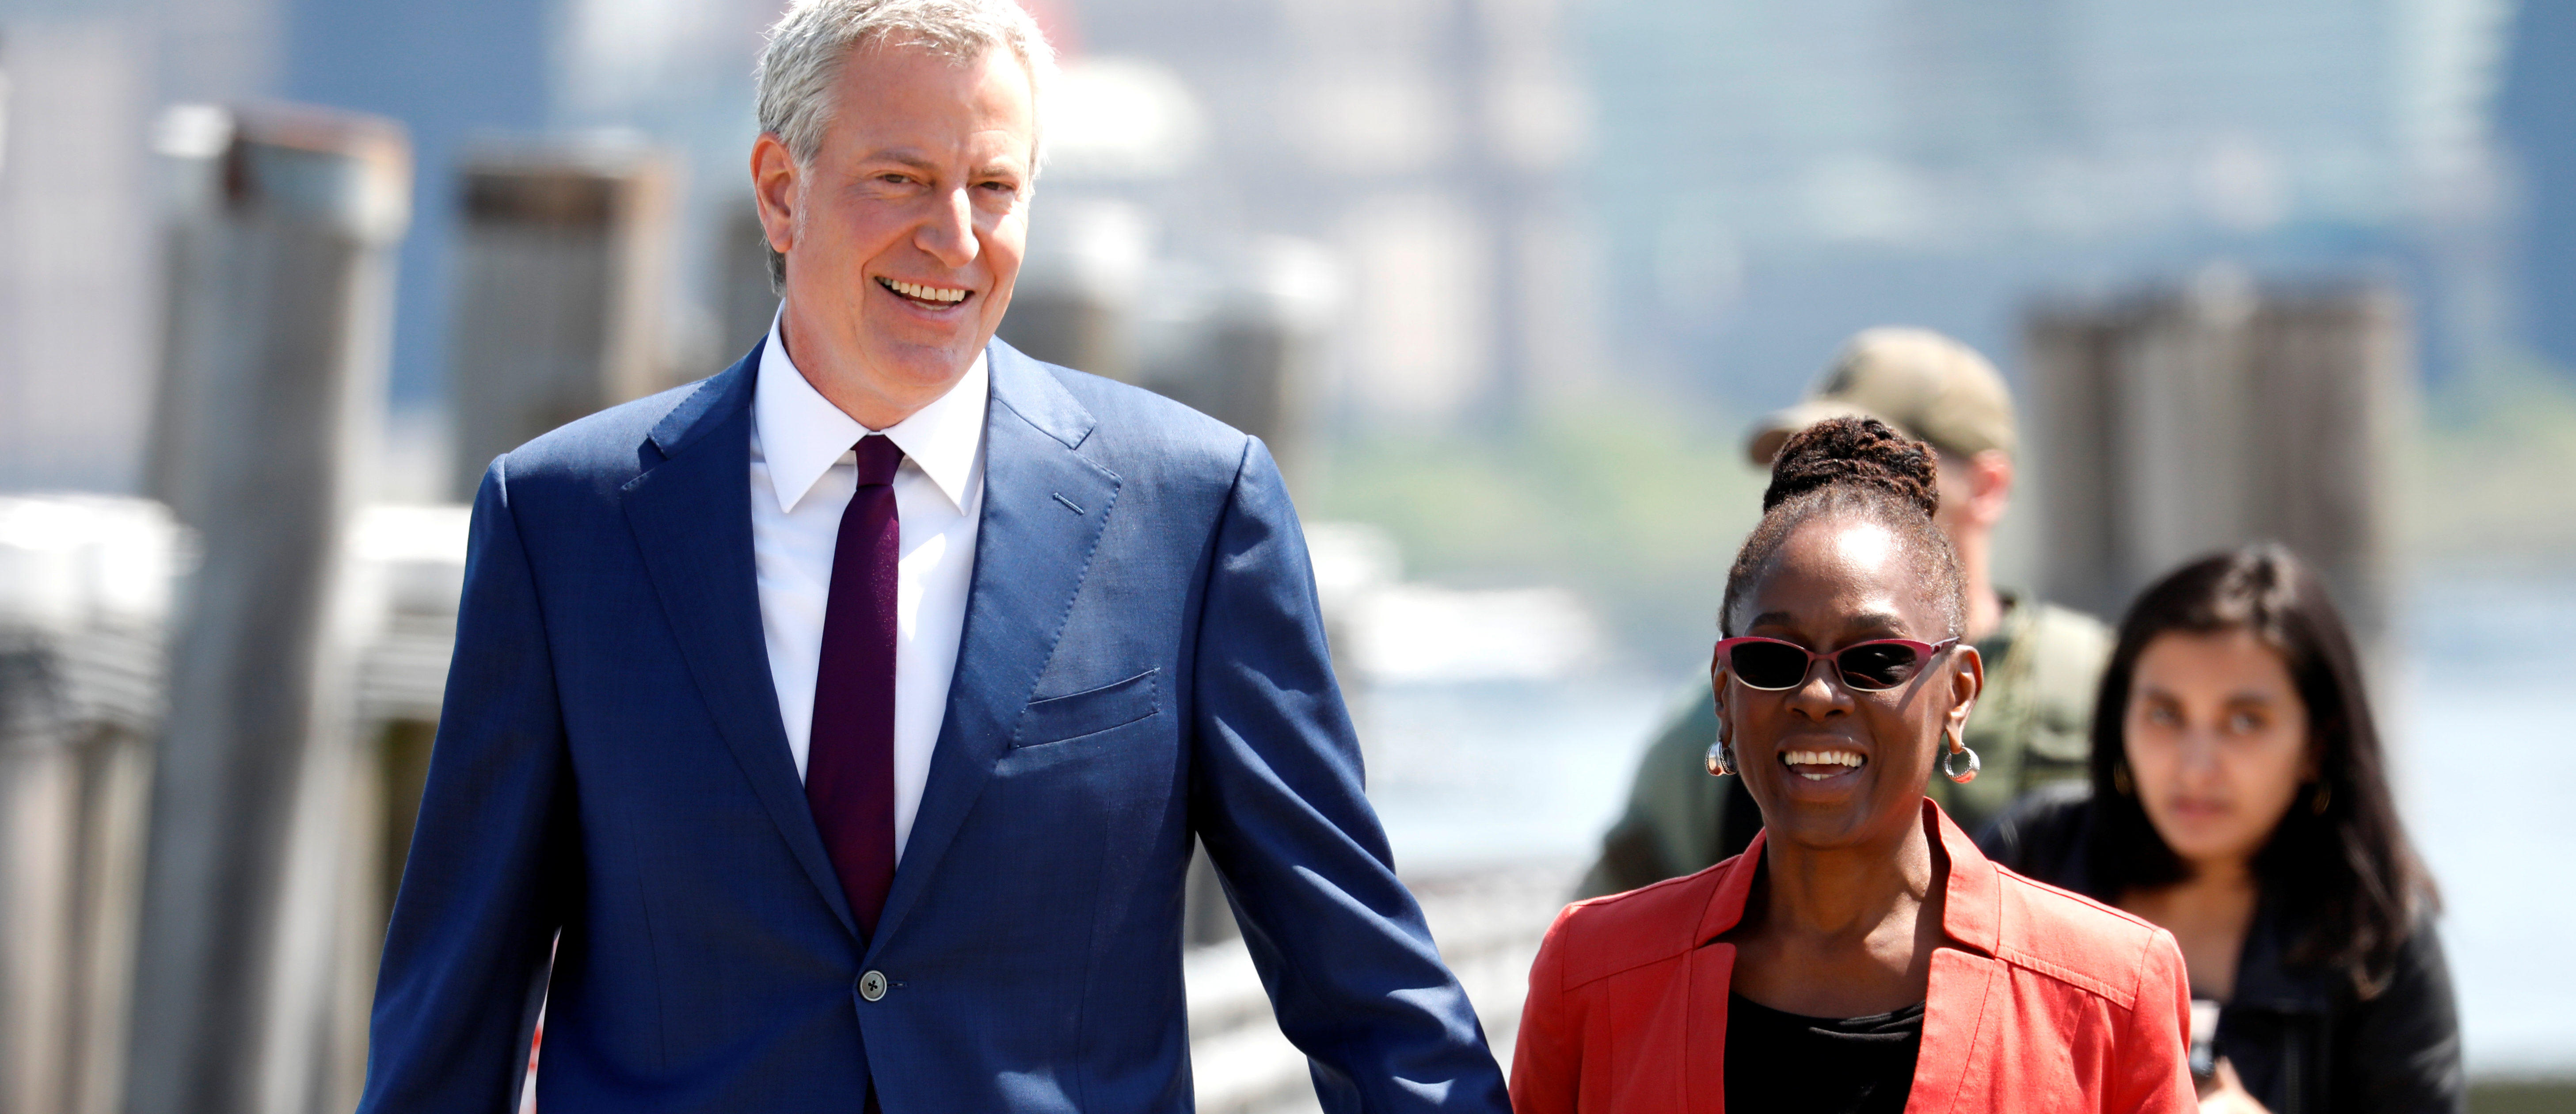 New York City Mayor and Democratic Presidential candidate Bill de Blasio arrives at Liberty Island with his wife Chirlane McCray to attend the dedication of the new Statue of Liberty Museum in New York Harbor, U.S., May 16, 2019. REUTERS/Mike Segar